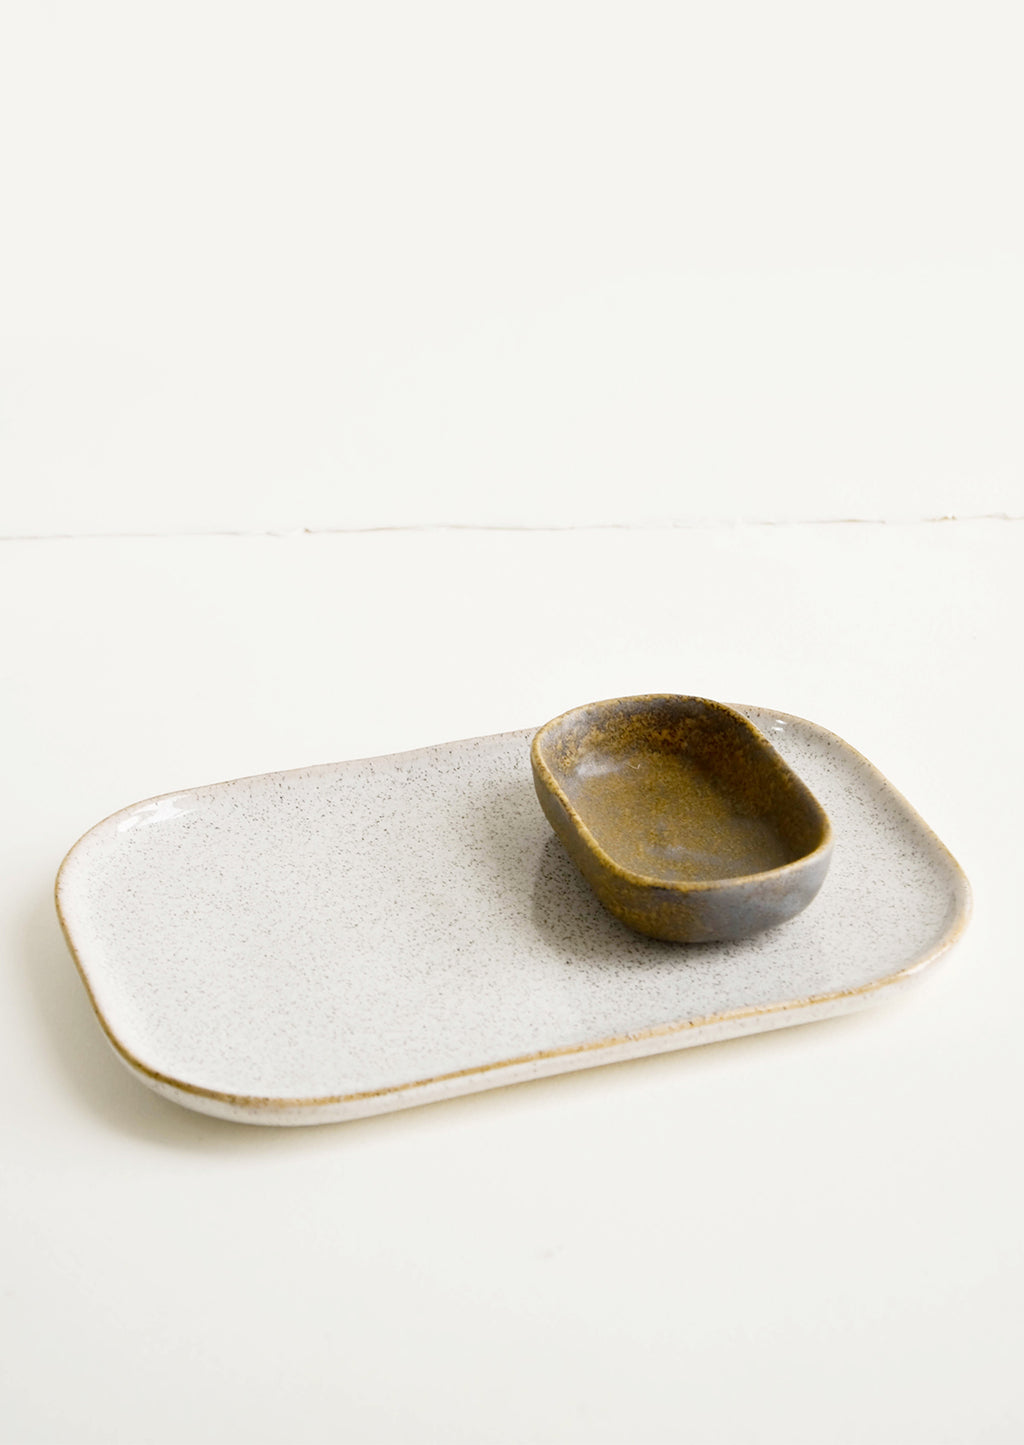 4: Ceramic Tray & Sauce Dishe in White & Brown - LEIF